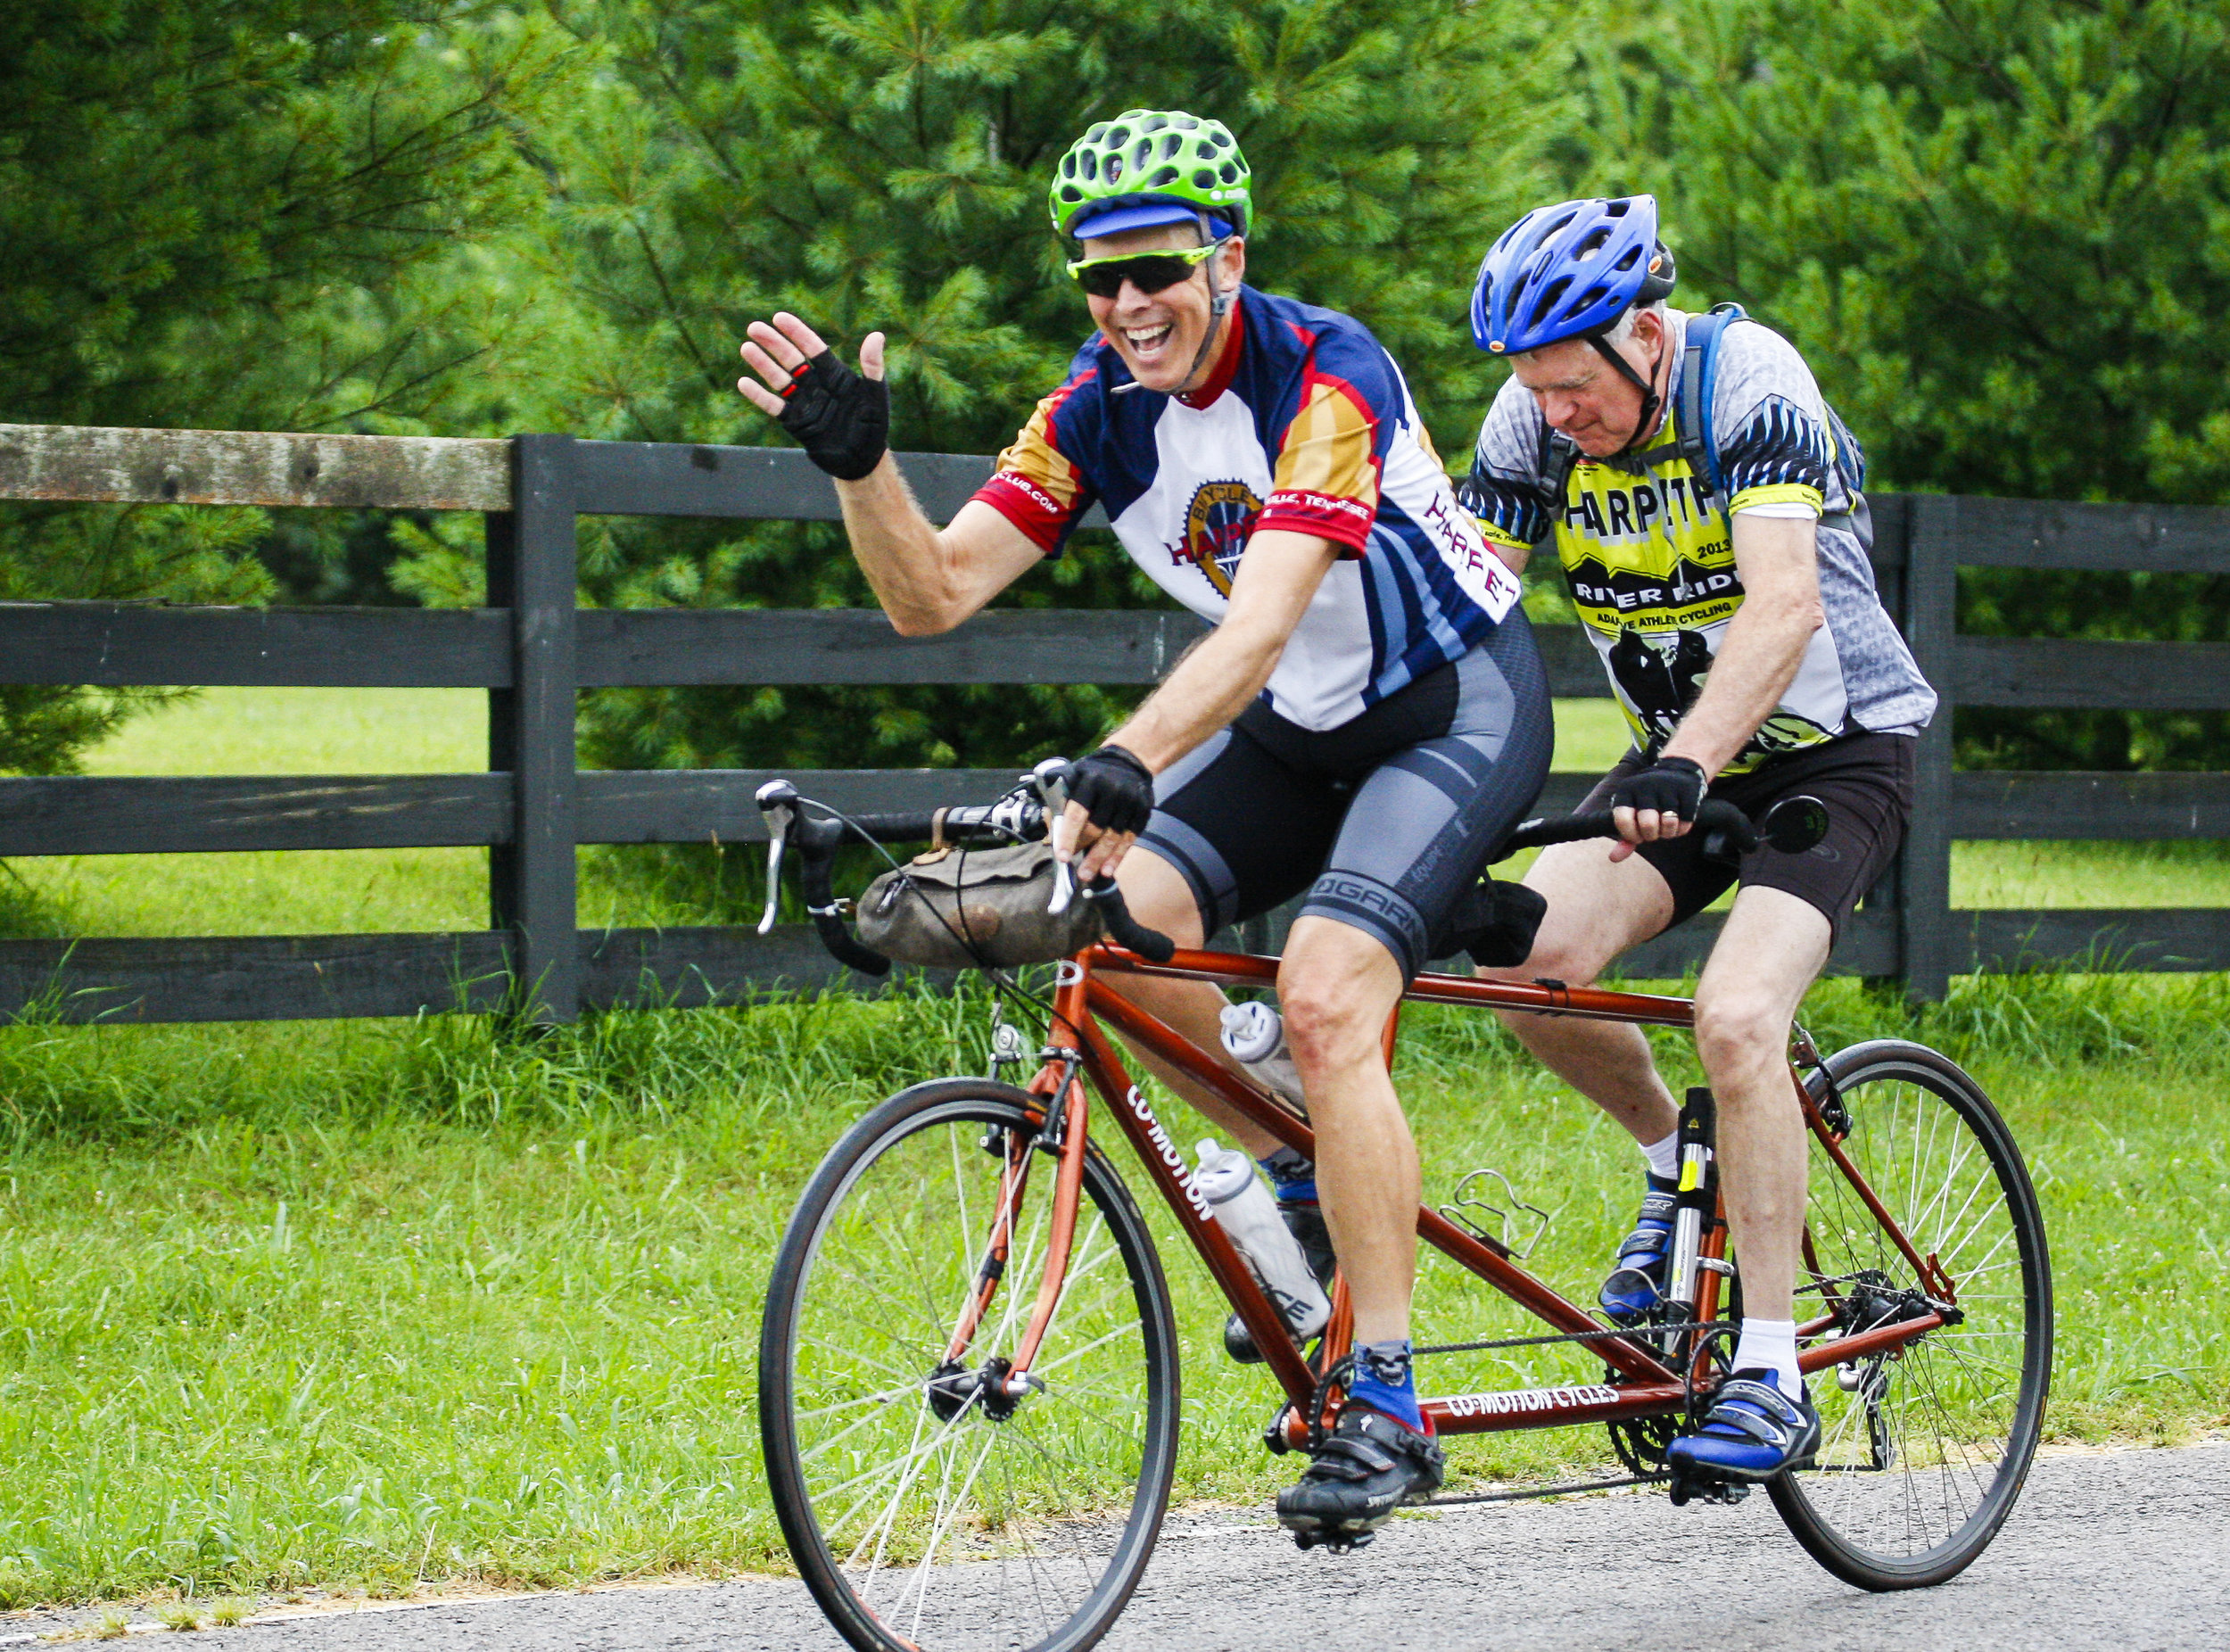 Adaptive Athletes - Regular events for blind tandem stokers, wounded warriors, and more